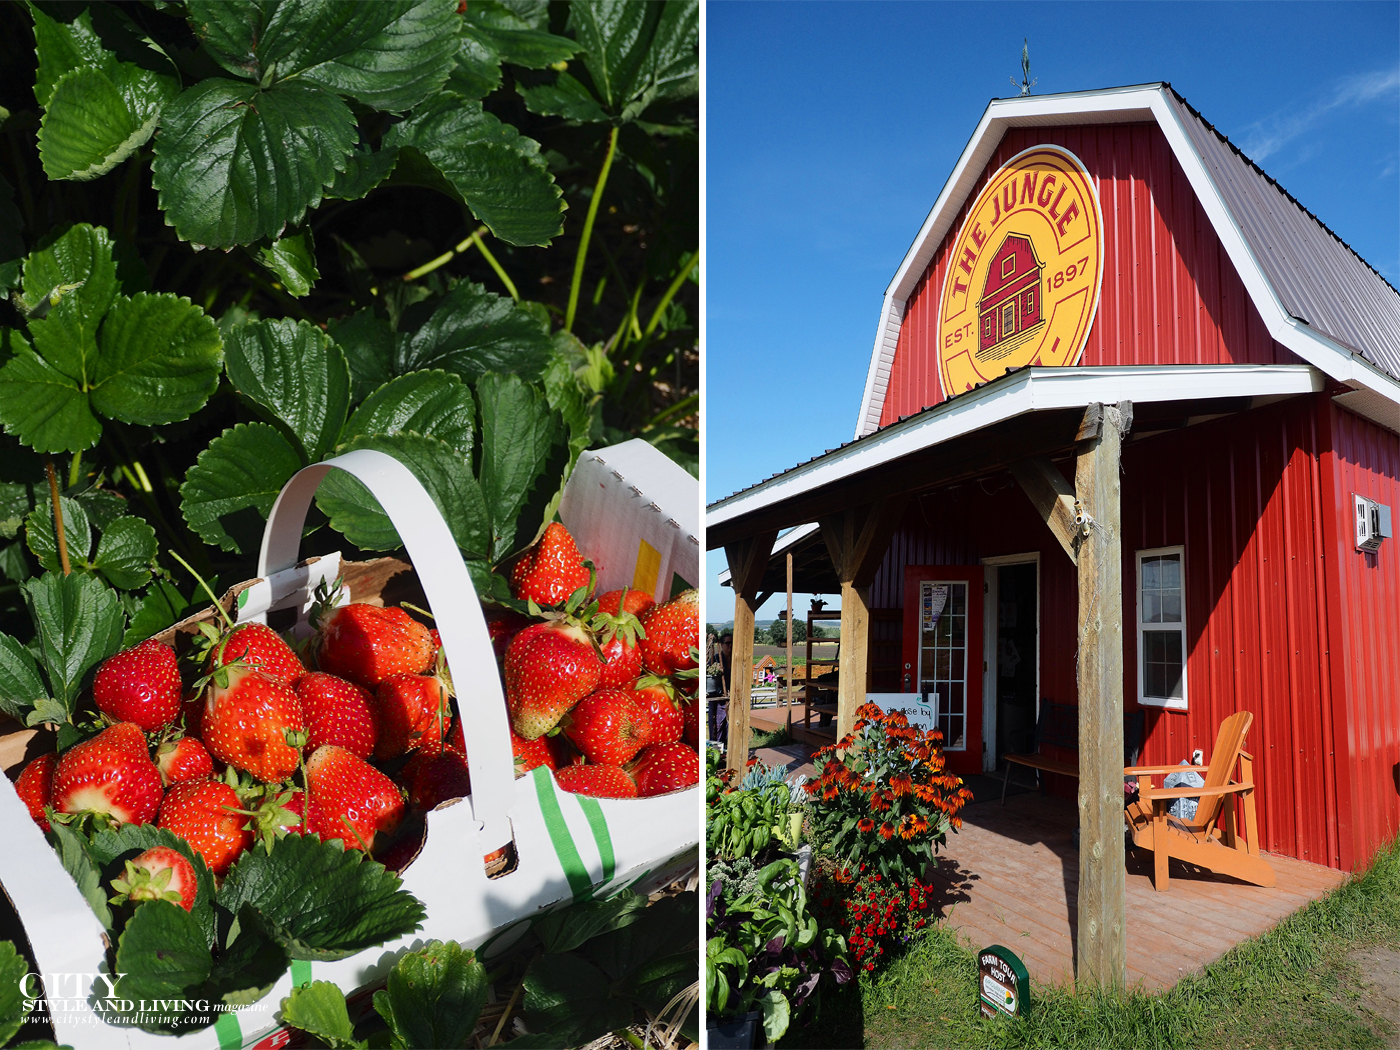 City Style and Living Magazine Travel Foodies Guide Red Deer Alberta red barn and strawberries